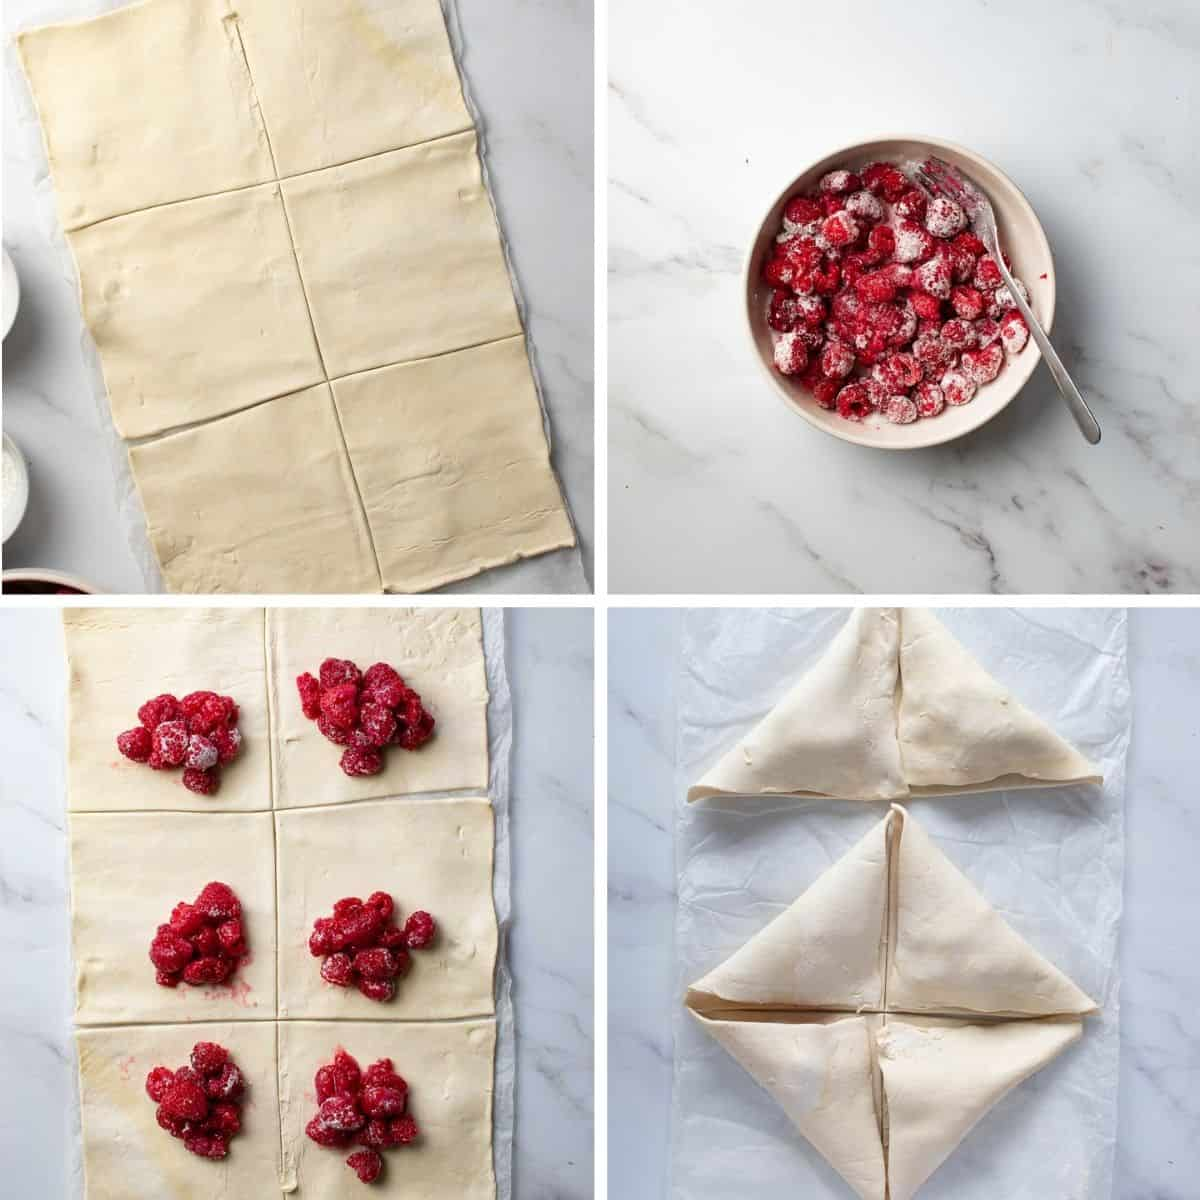 Step by step instructions showing how to make turnovers with raspberries.